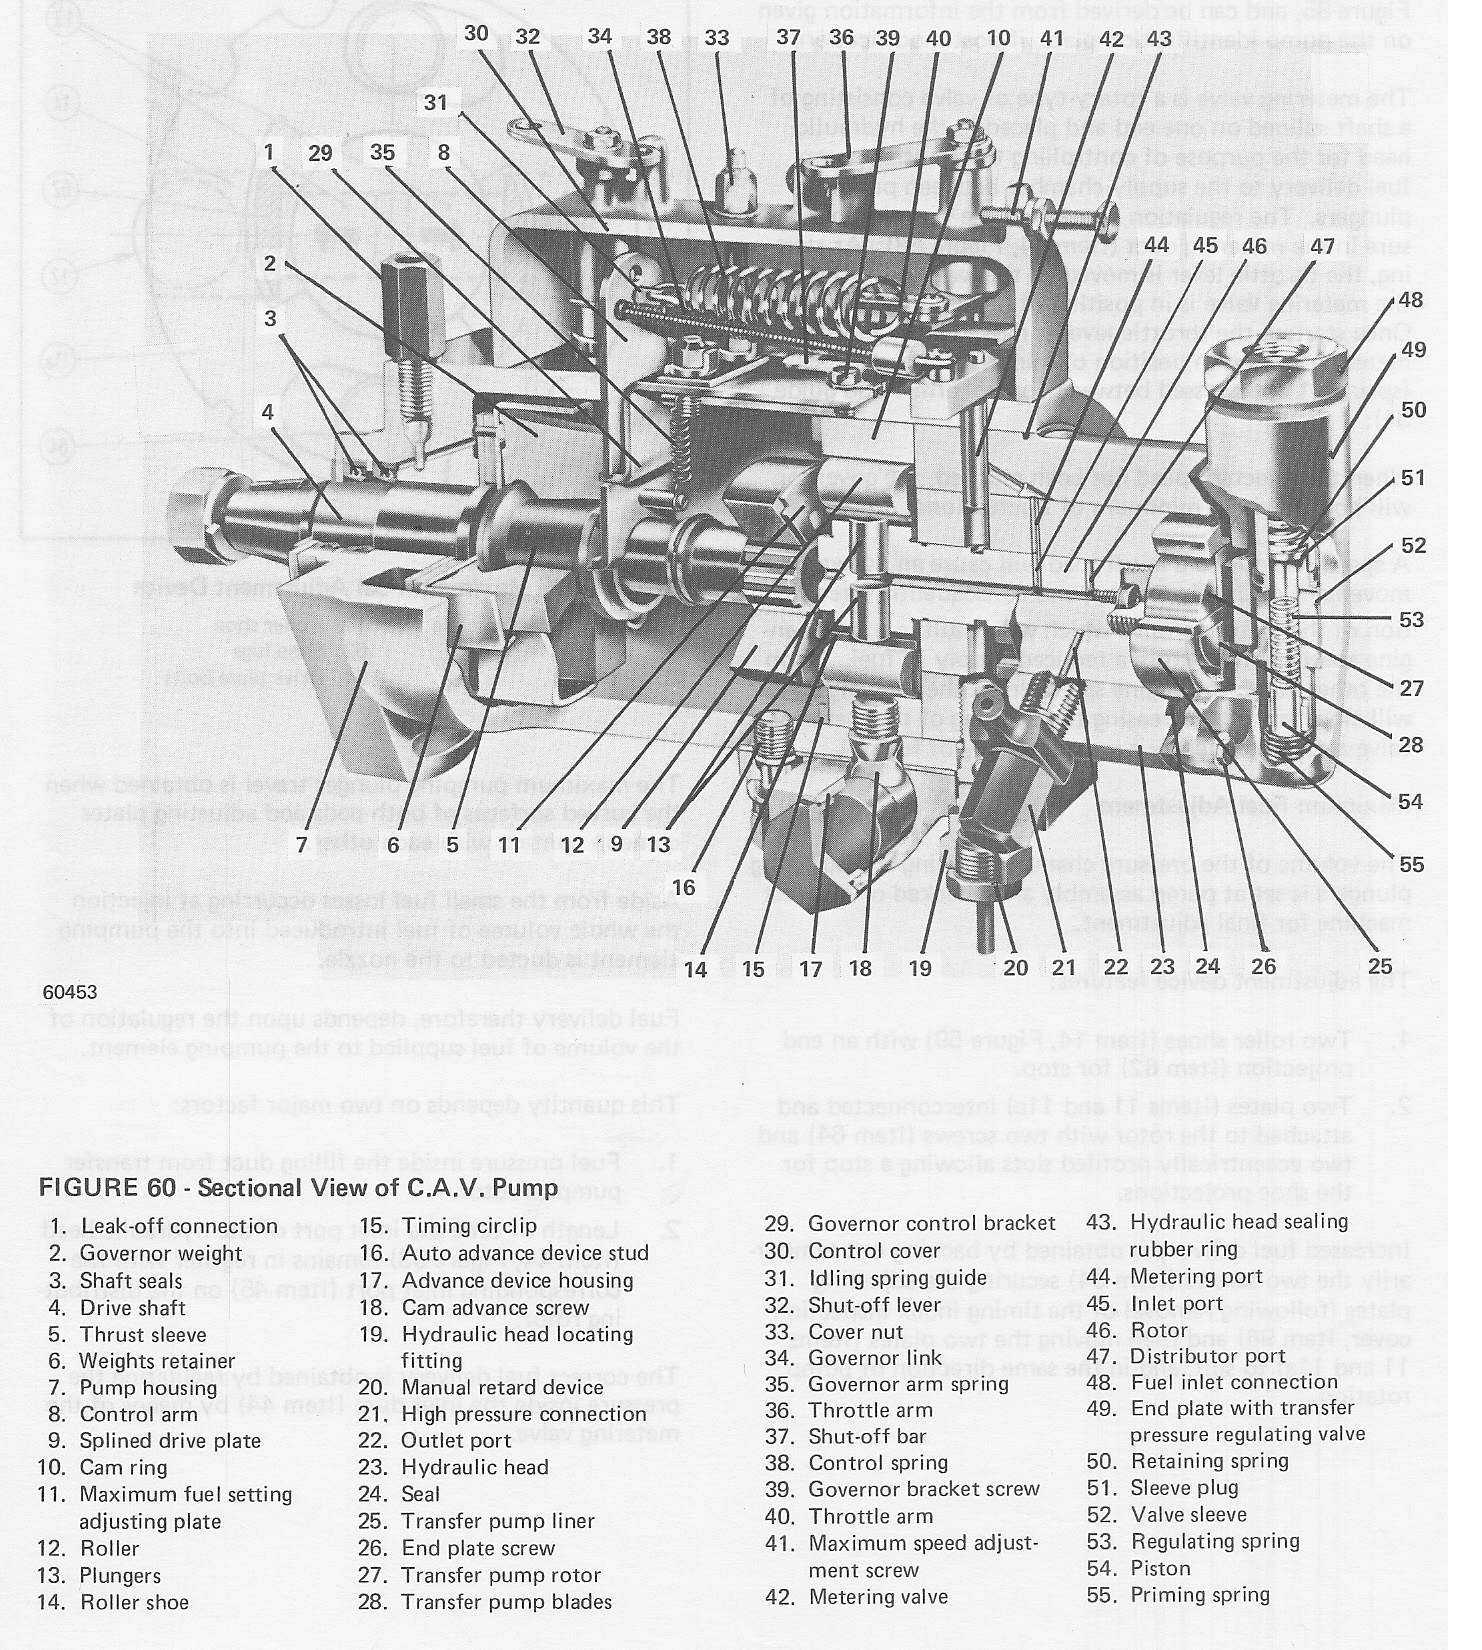 185 allis chalmers injector pump diagram i have an older allis chalmers model 5040 diesel tractor that allis chalmers magneto wiring diagram